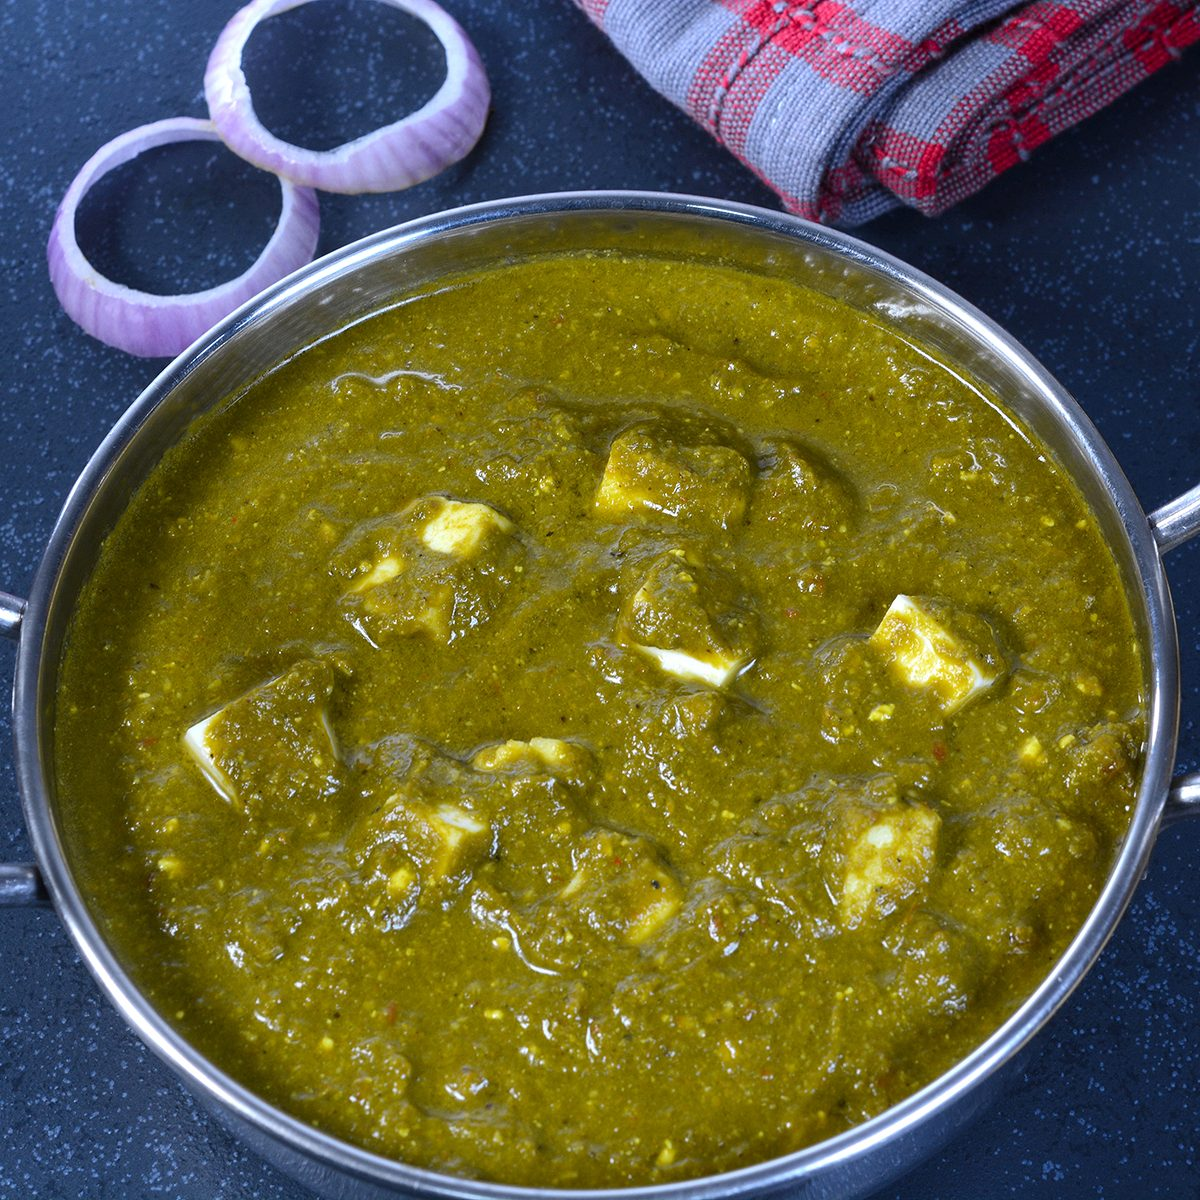 indian main dishes Indian food, Naan and Palak Paneer curry dish. Palak paneer is prepared using spinach and paneer (indian cheese), it is a popular Indian meal.